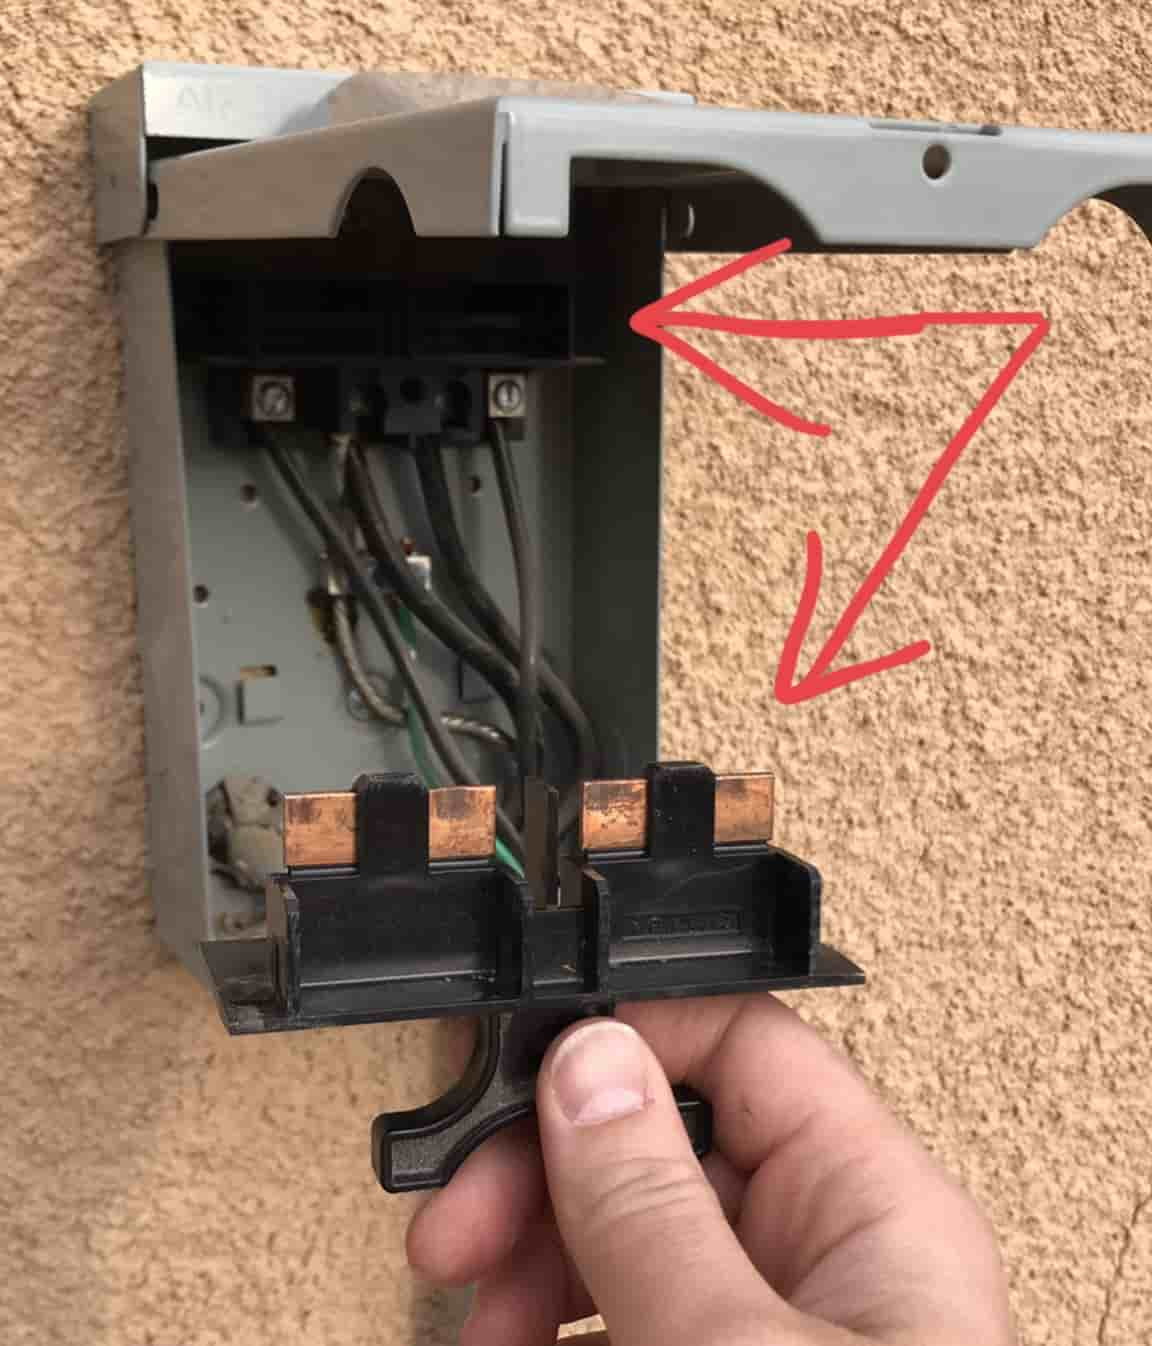 Removing the circuit breaker on the power box before installing a hard start kit